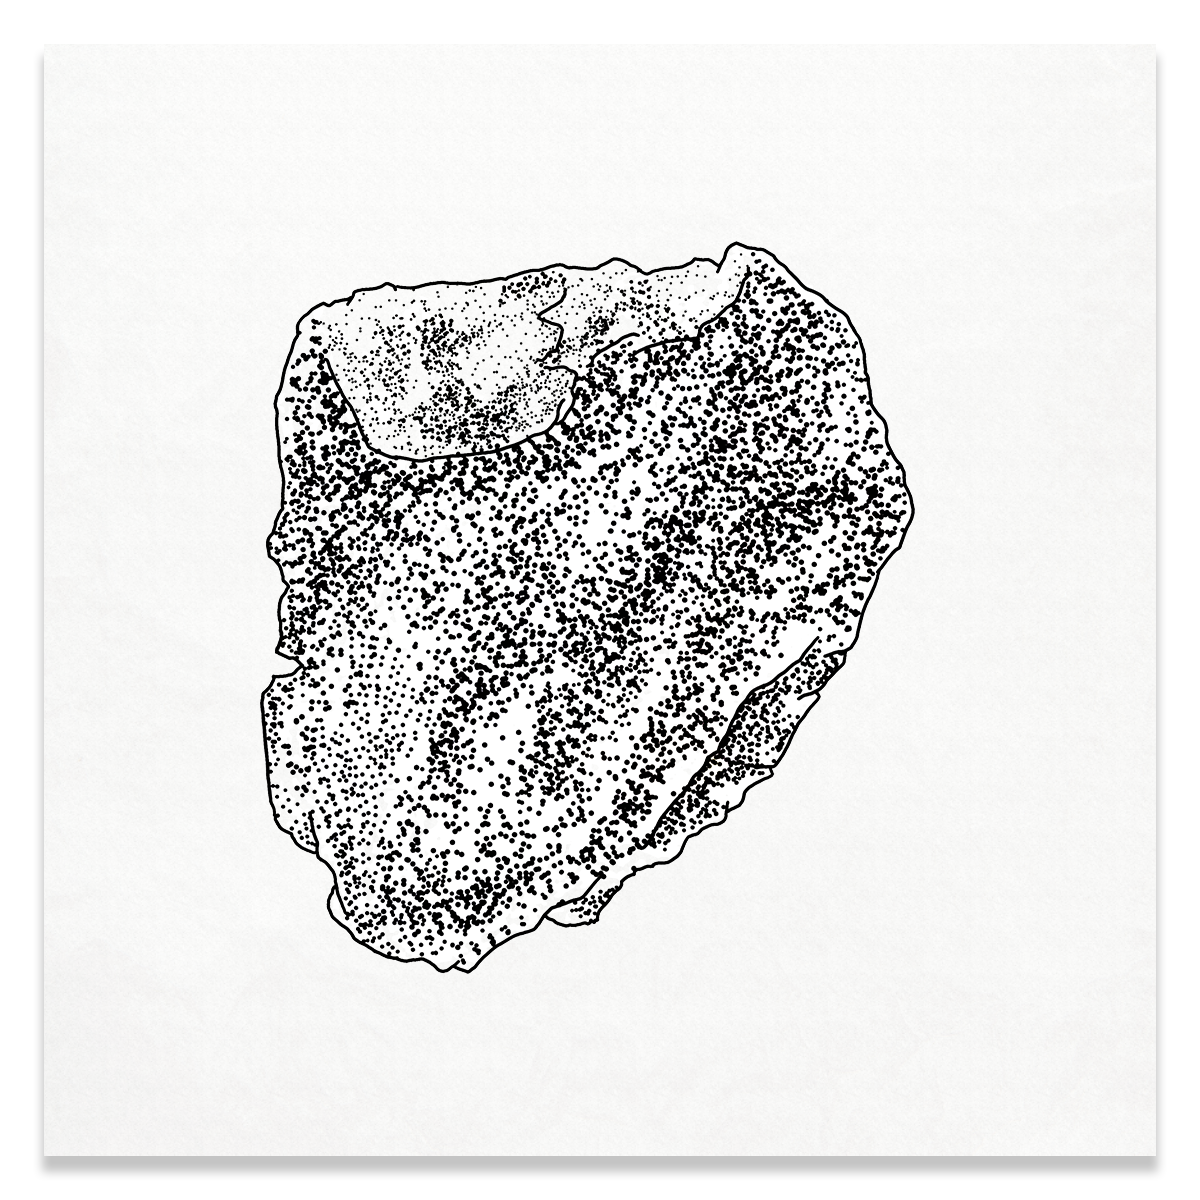 Stones_0012_13.png